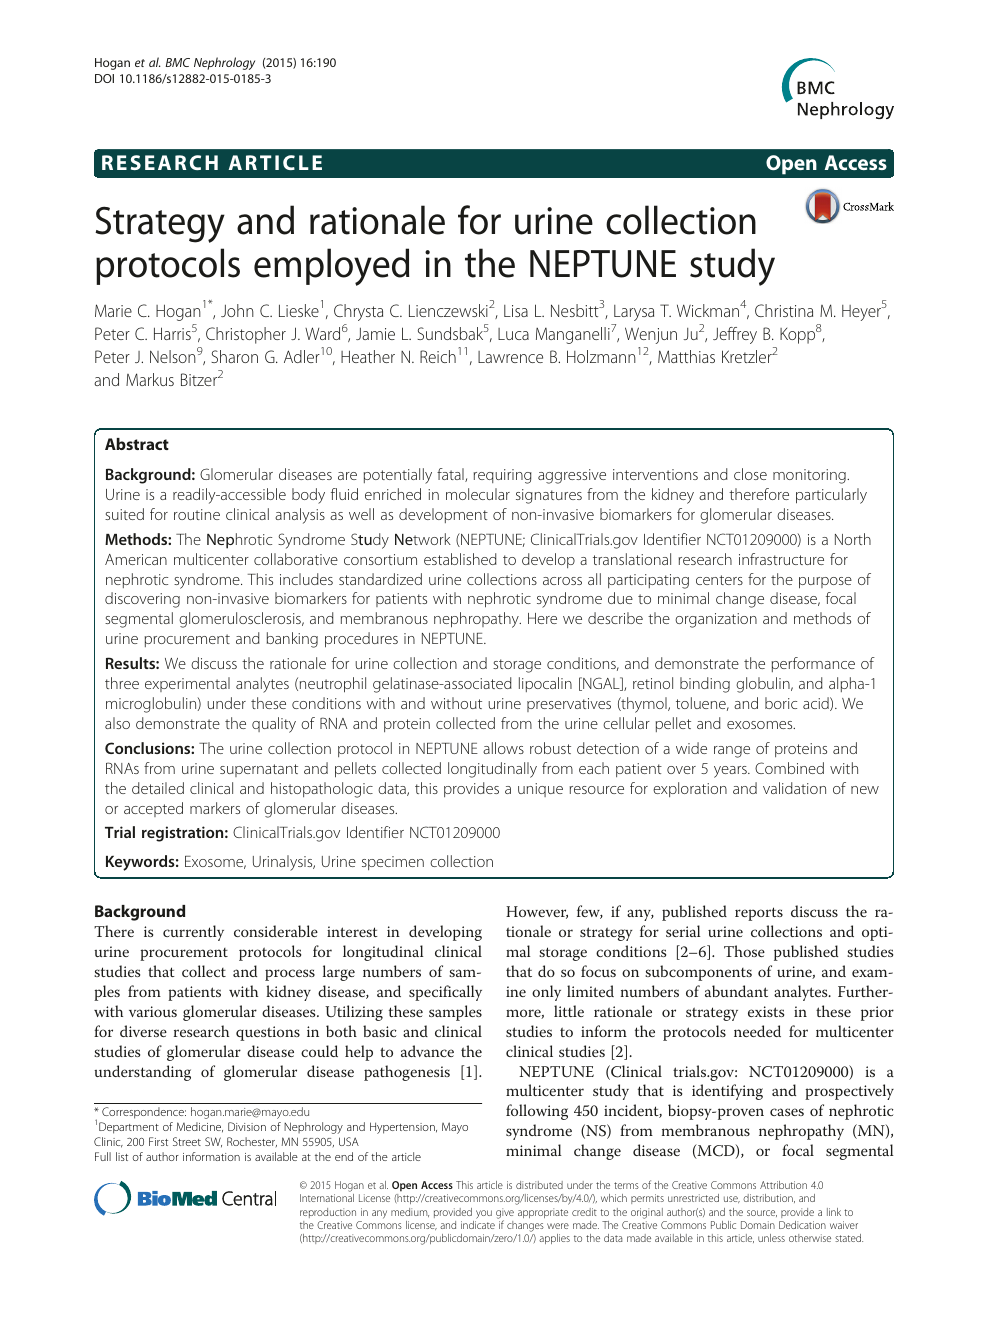 Strategy and rationale for urine collection protocols